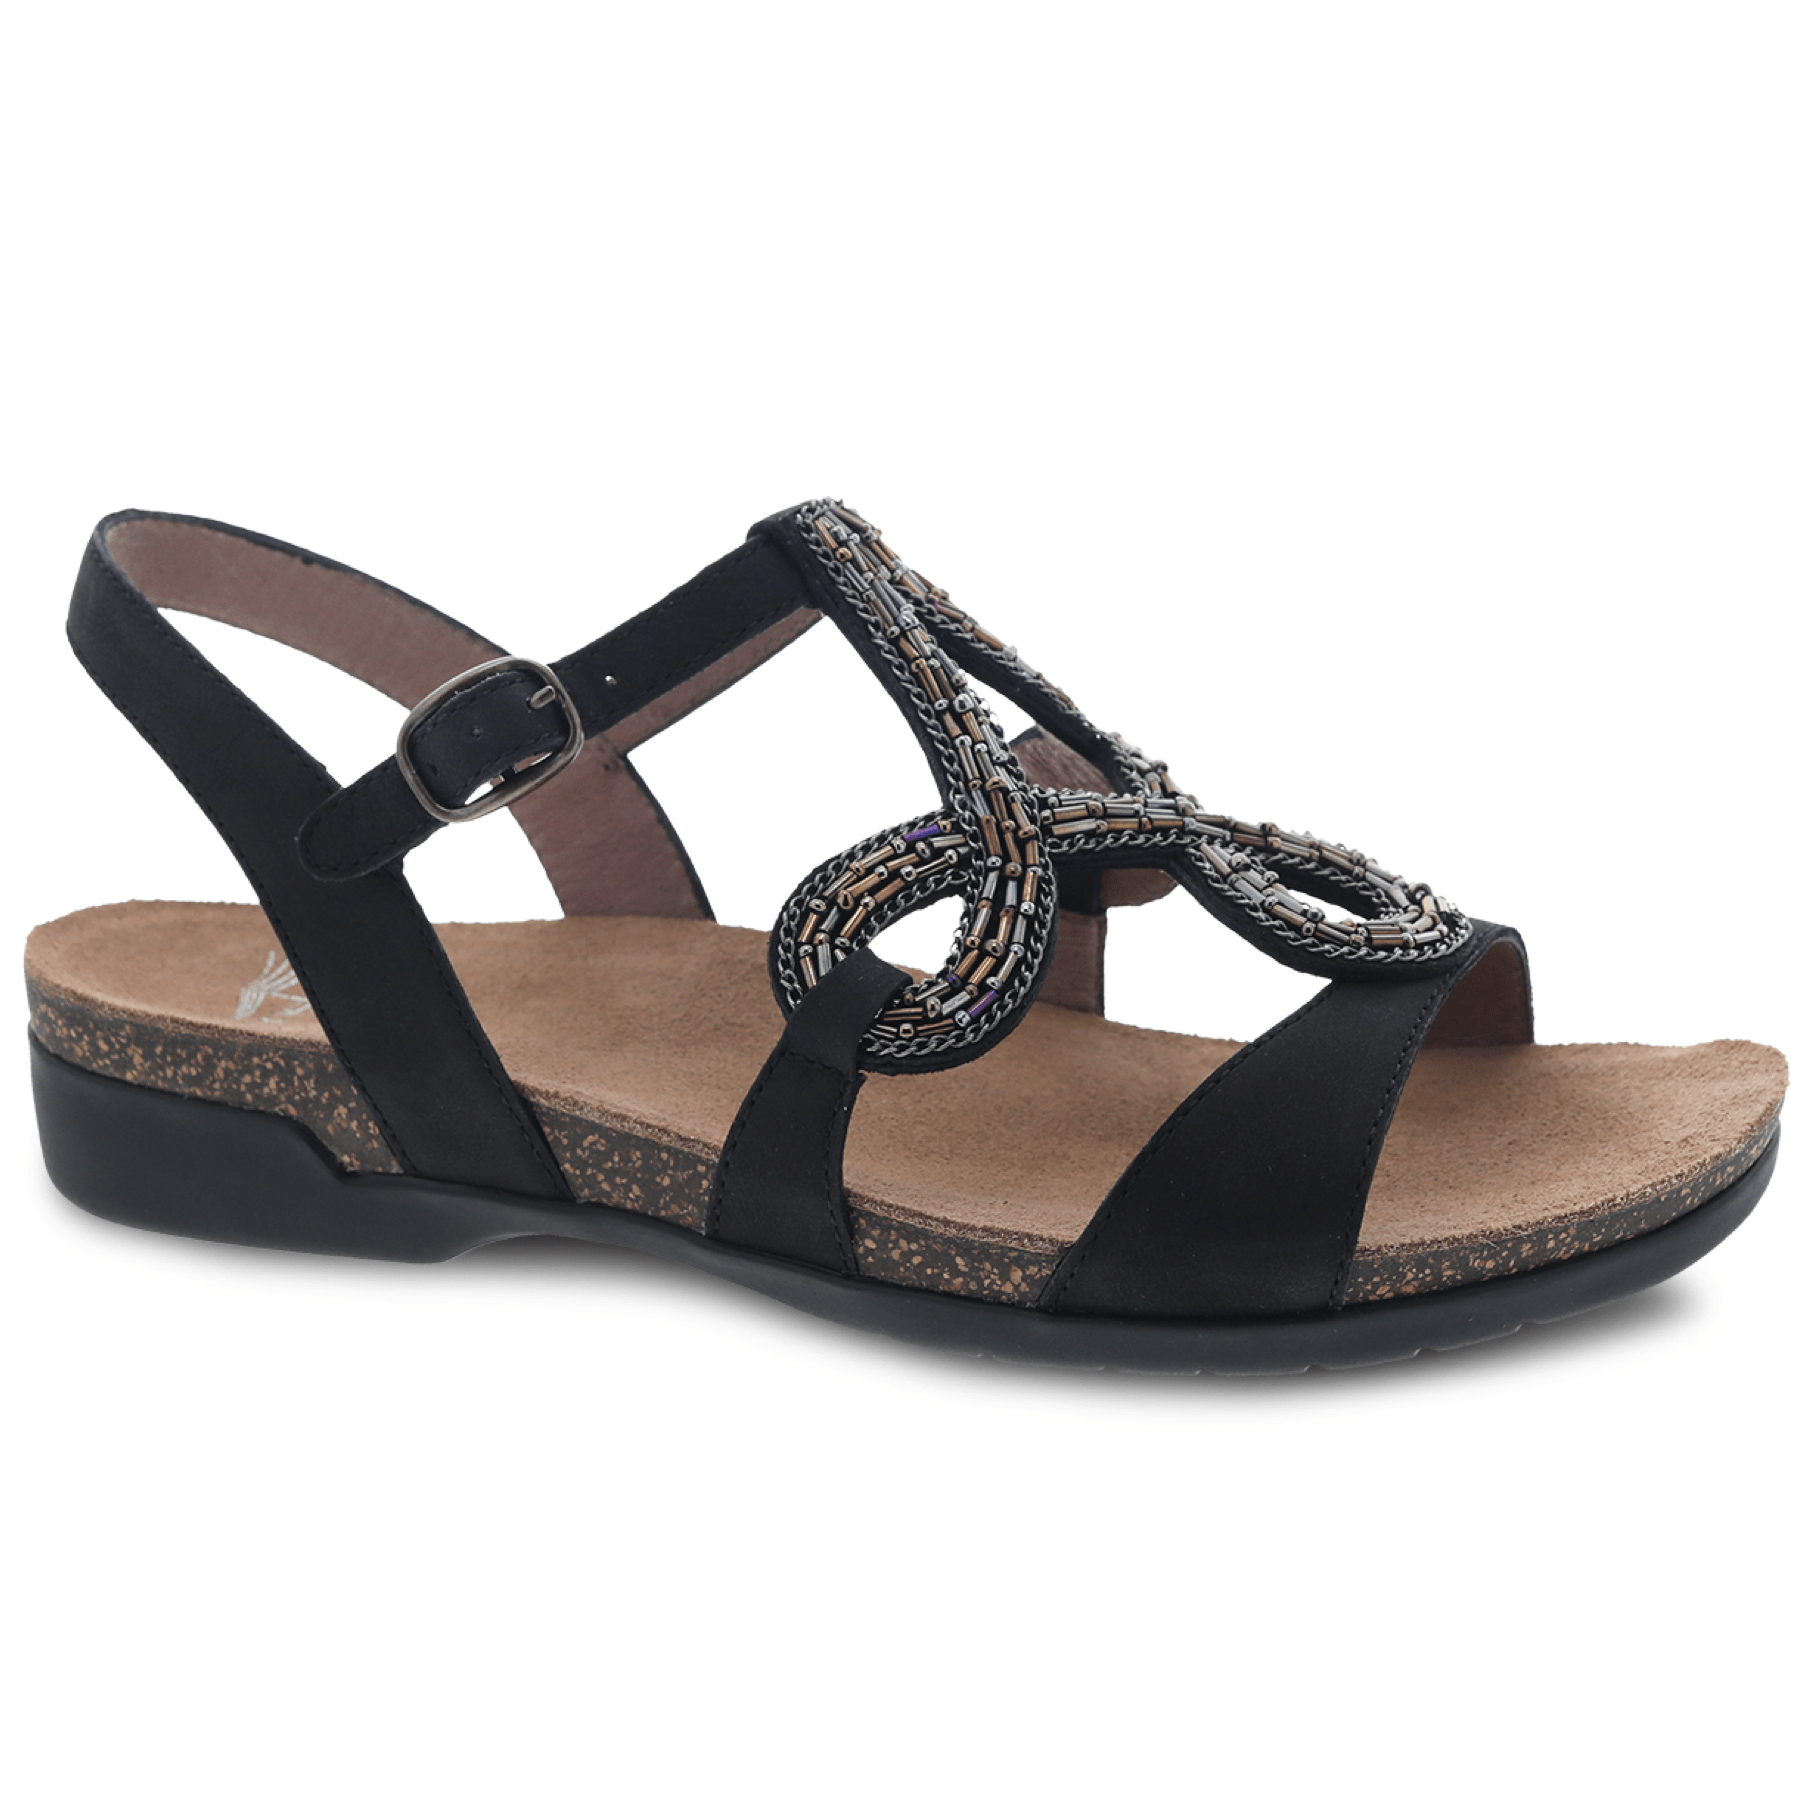 Dansko Reeta Women's Leather Cork Beaded Gladiator Flat Sandal Shoe